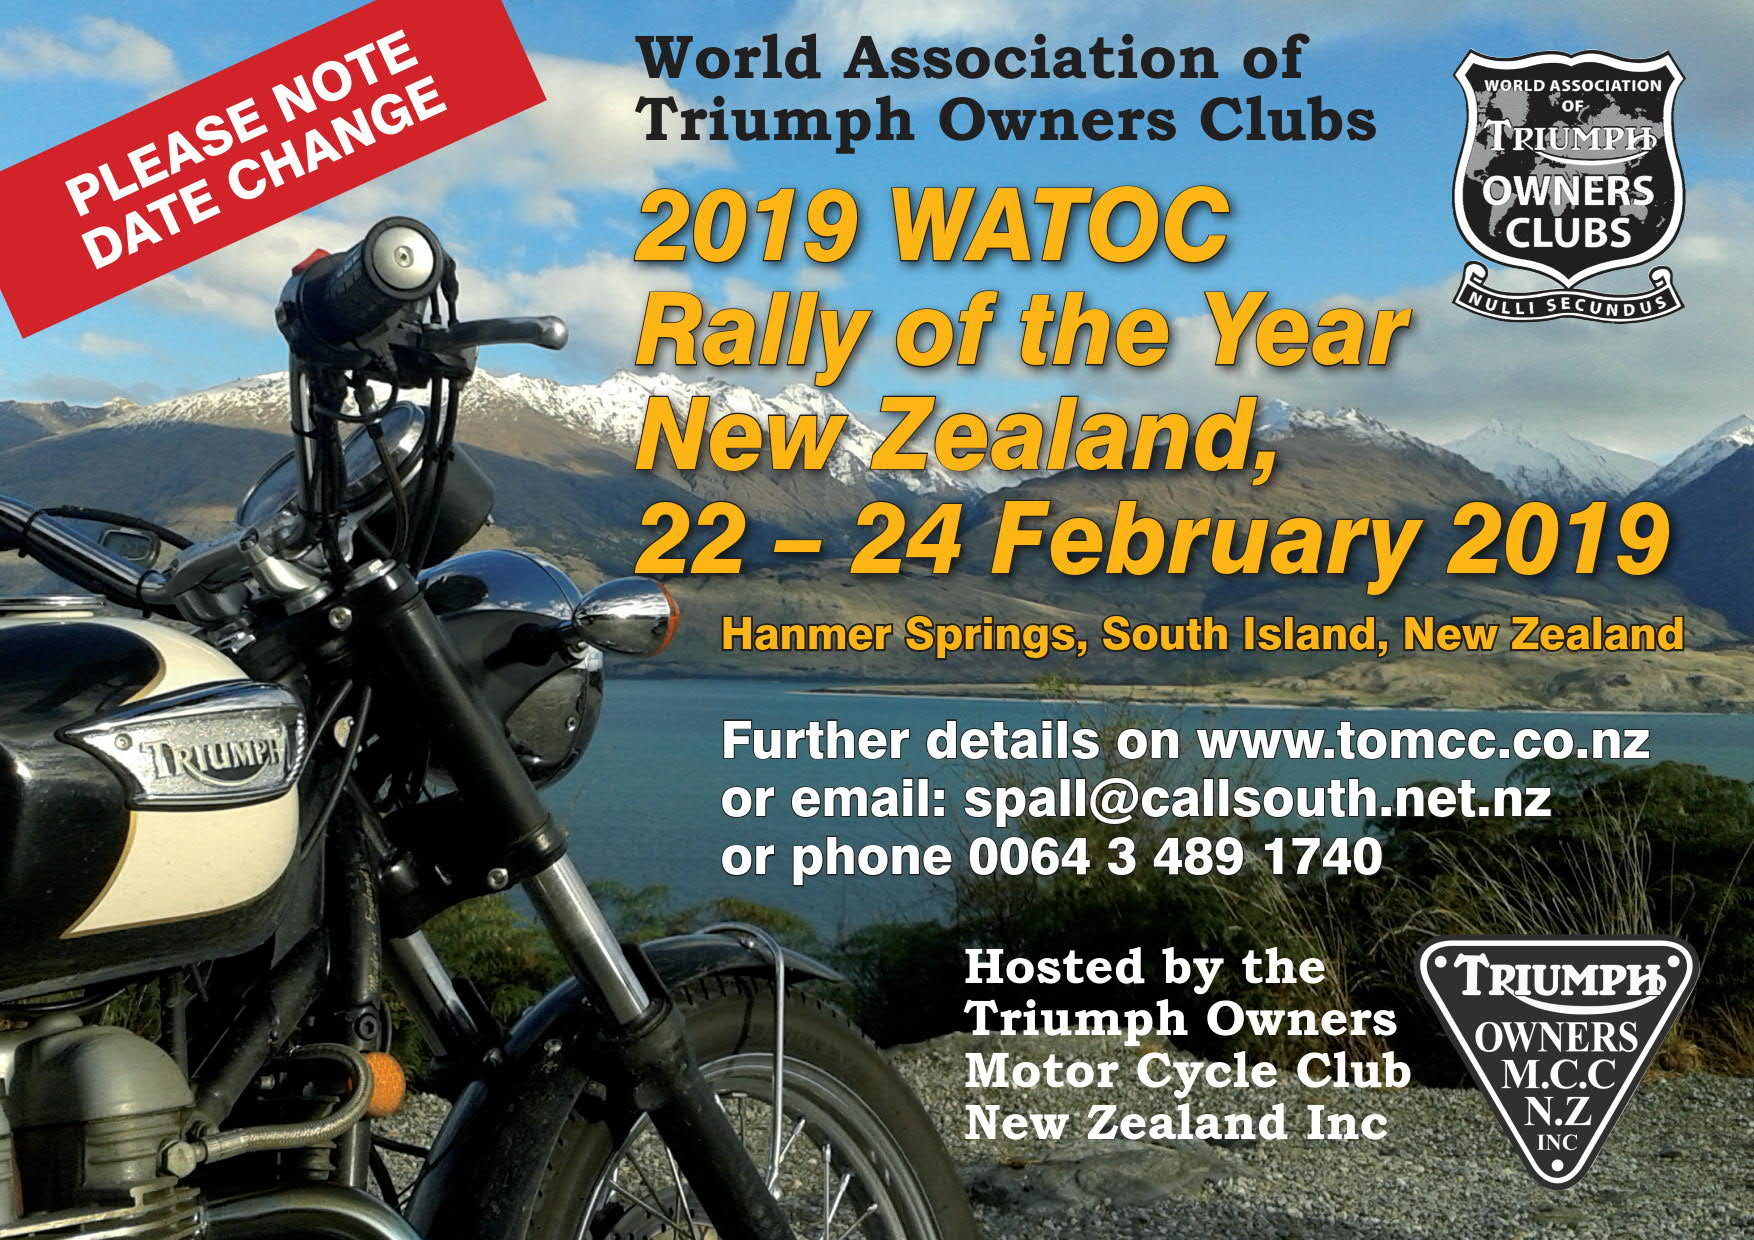 watoc | triumph owners motor cycle club nz inc.